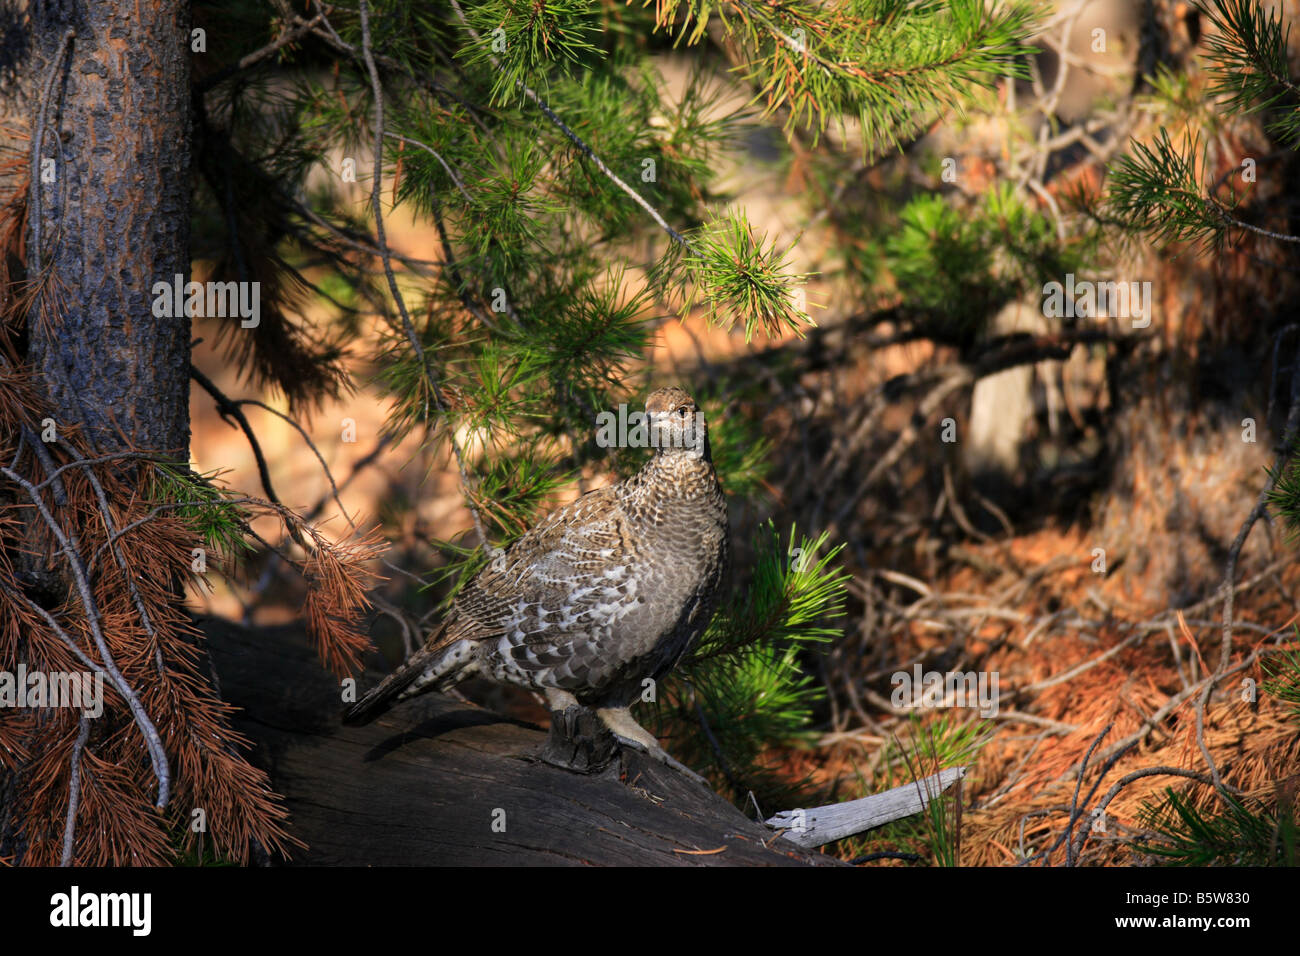 Male Blue Grouse in fall plumage, Yellowstone National Park, Wyoming - Stock Image